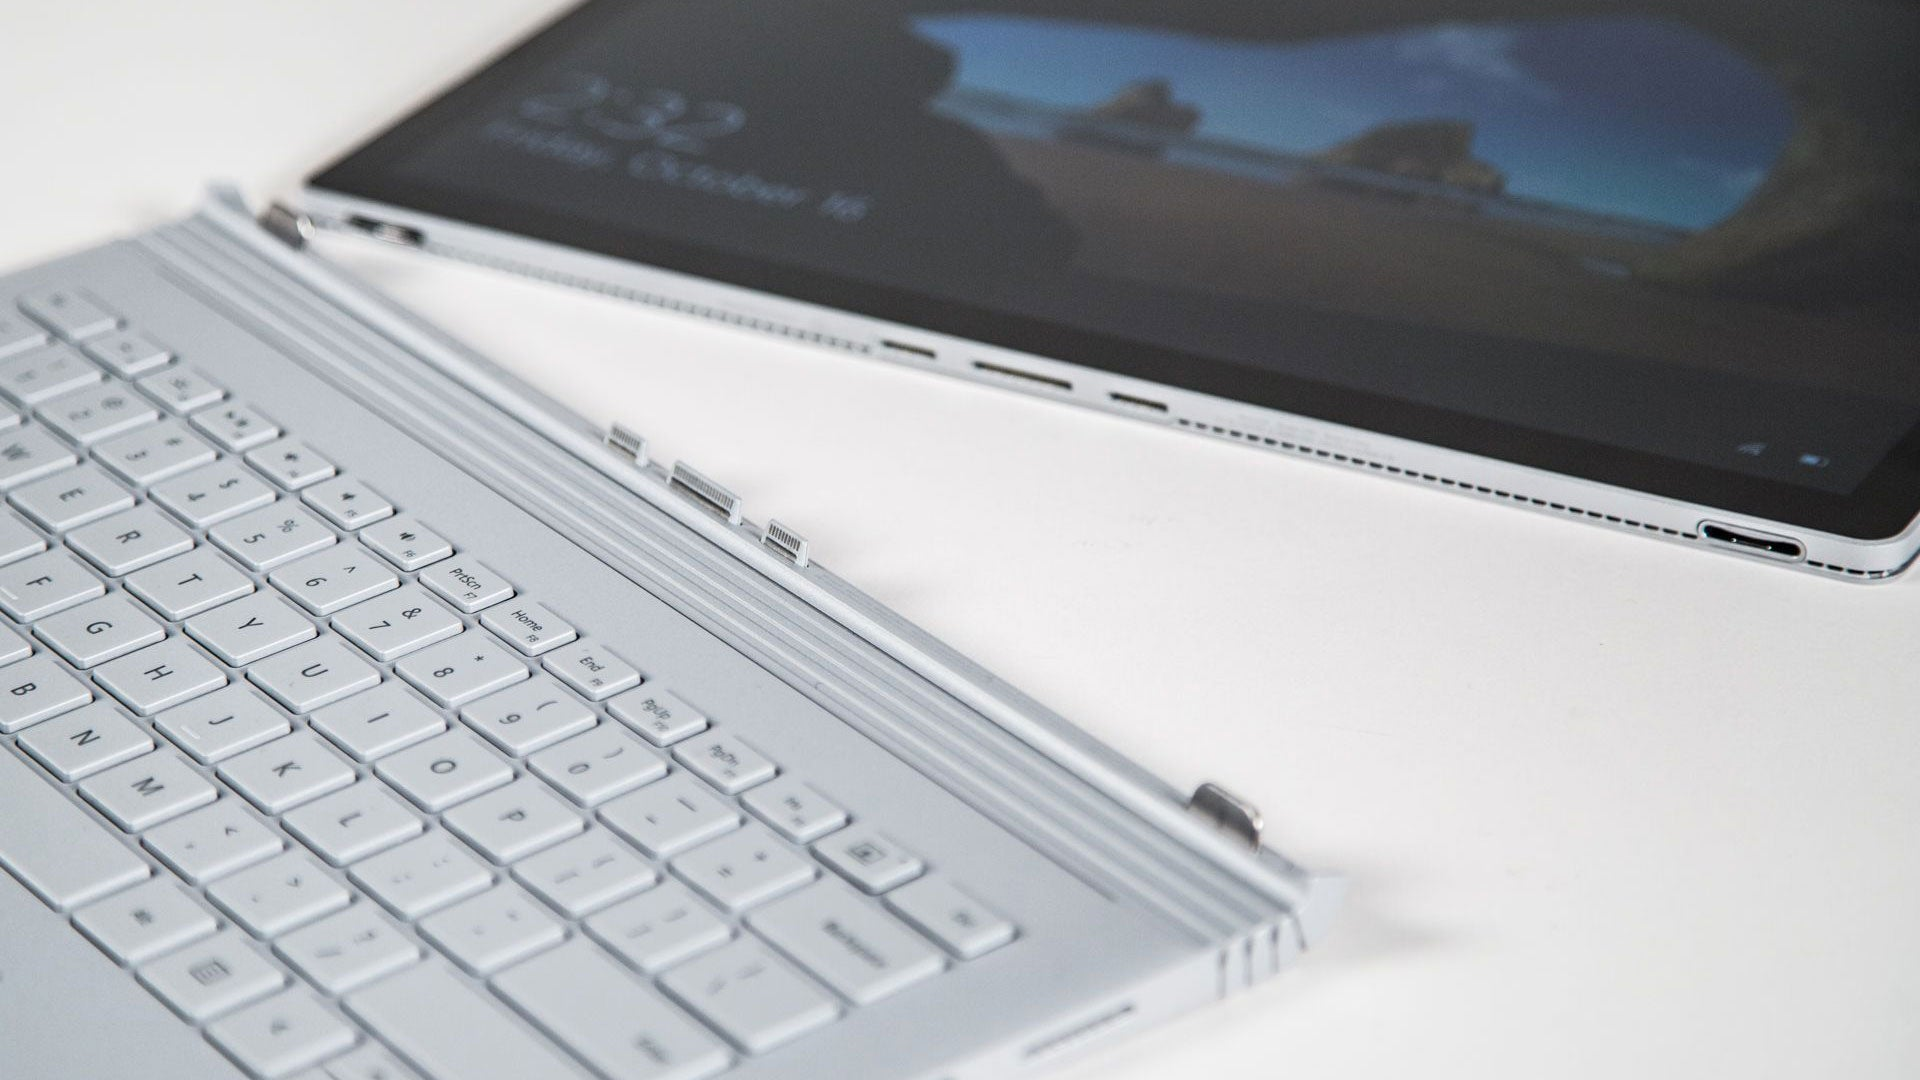 Surface Book (1 TB SSD, 16 GB RAM, Intel Core i7, NVIDIA GeForce graphics)